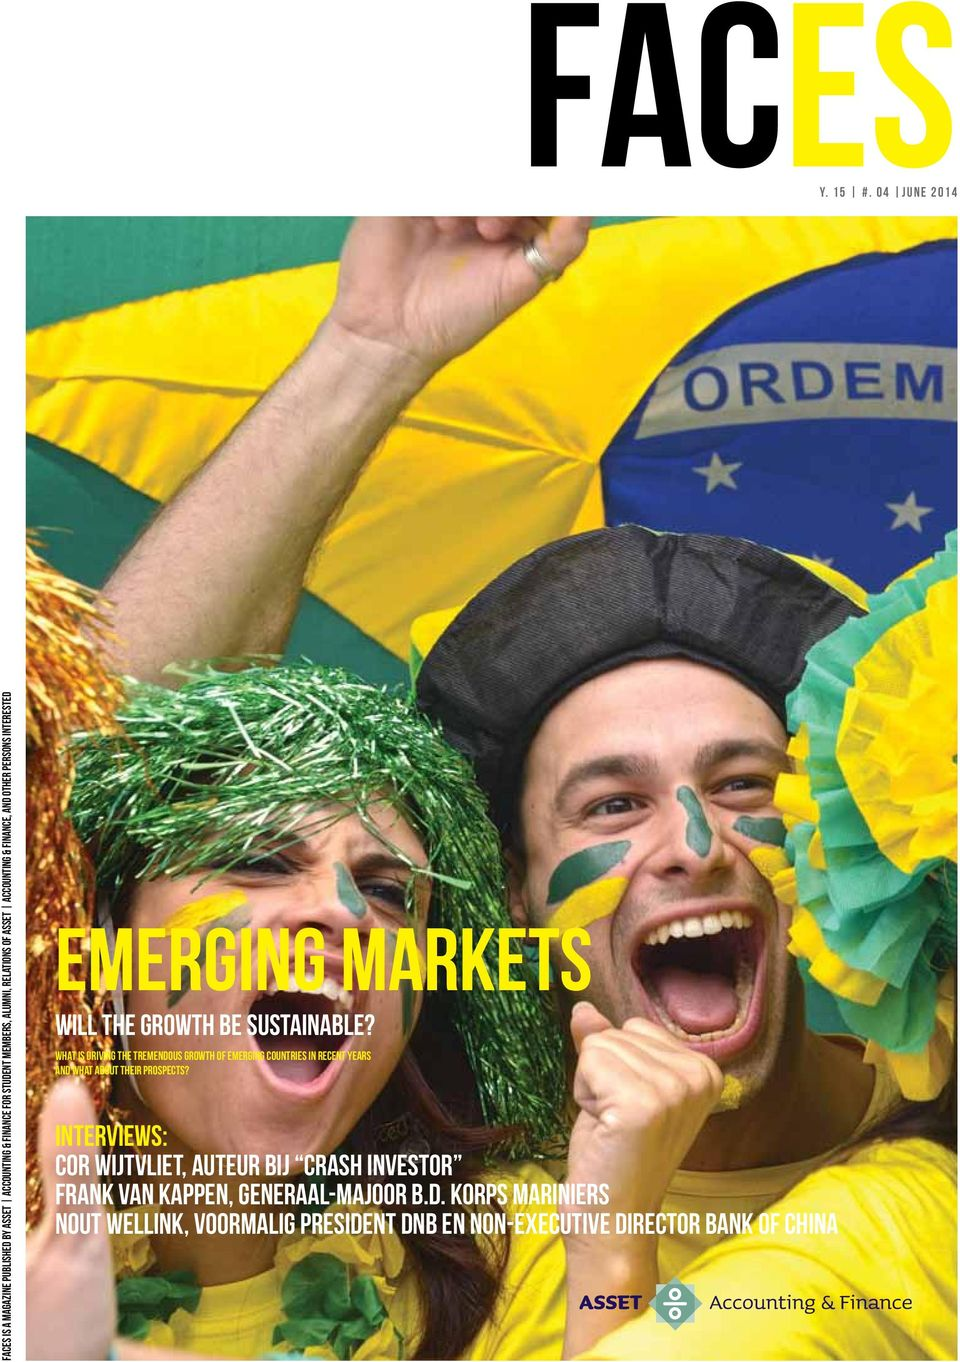 Accounting & Finance, and other persons interested emerging markets will the growth be sustainable?